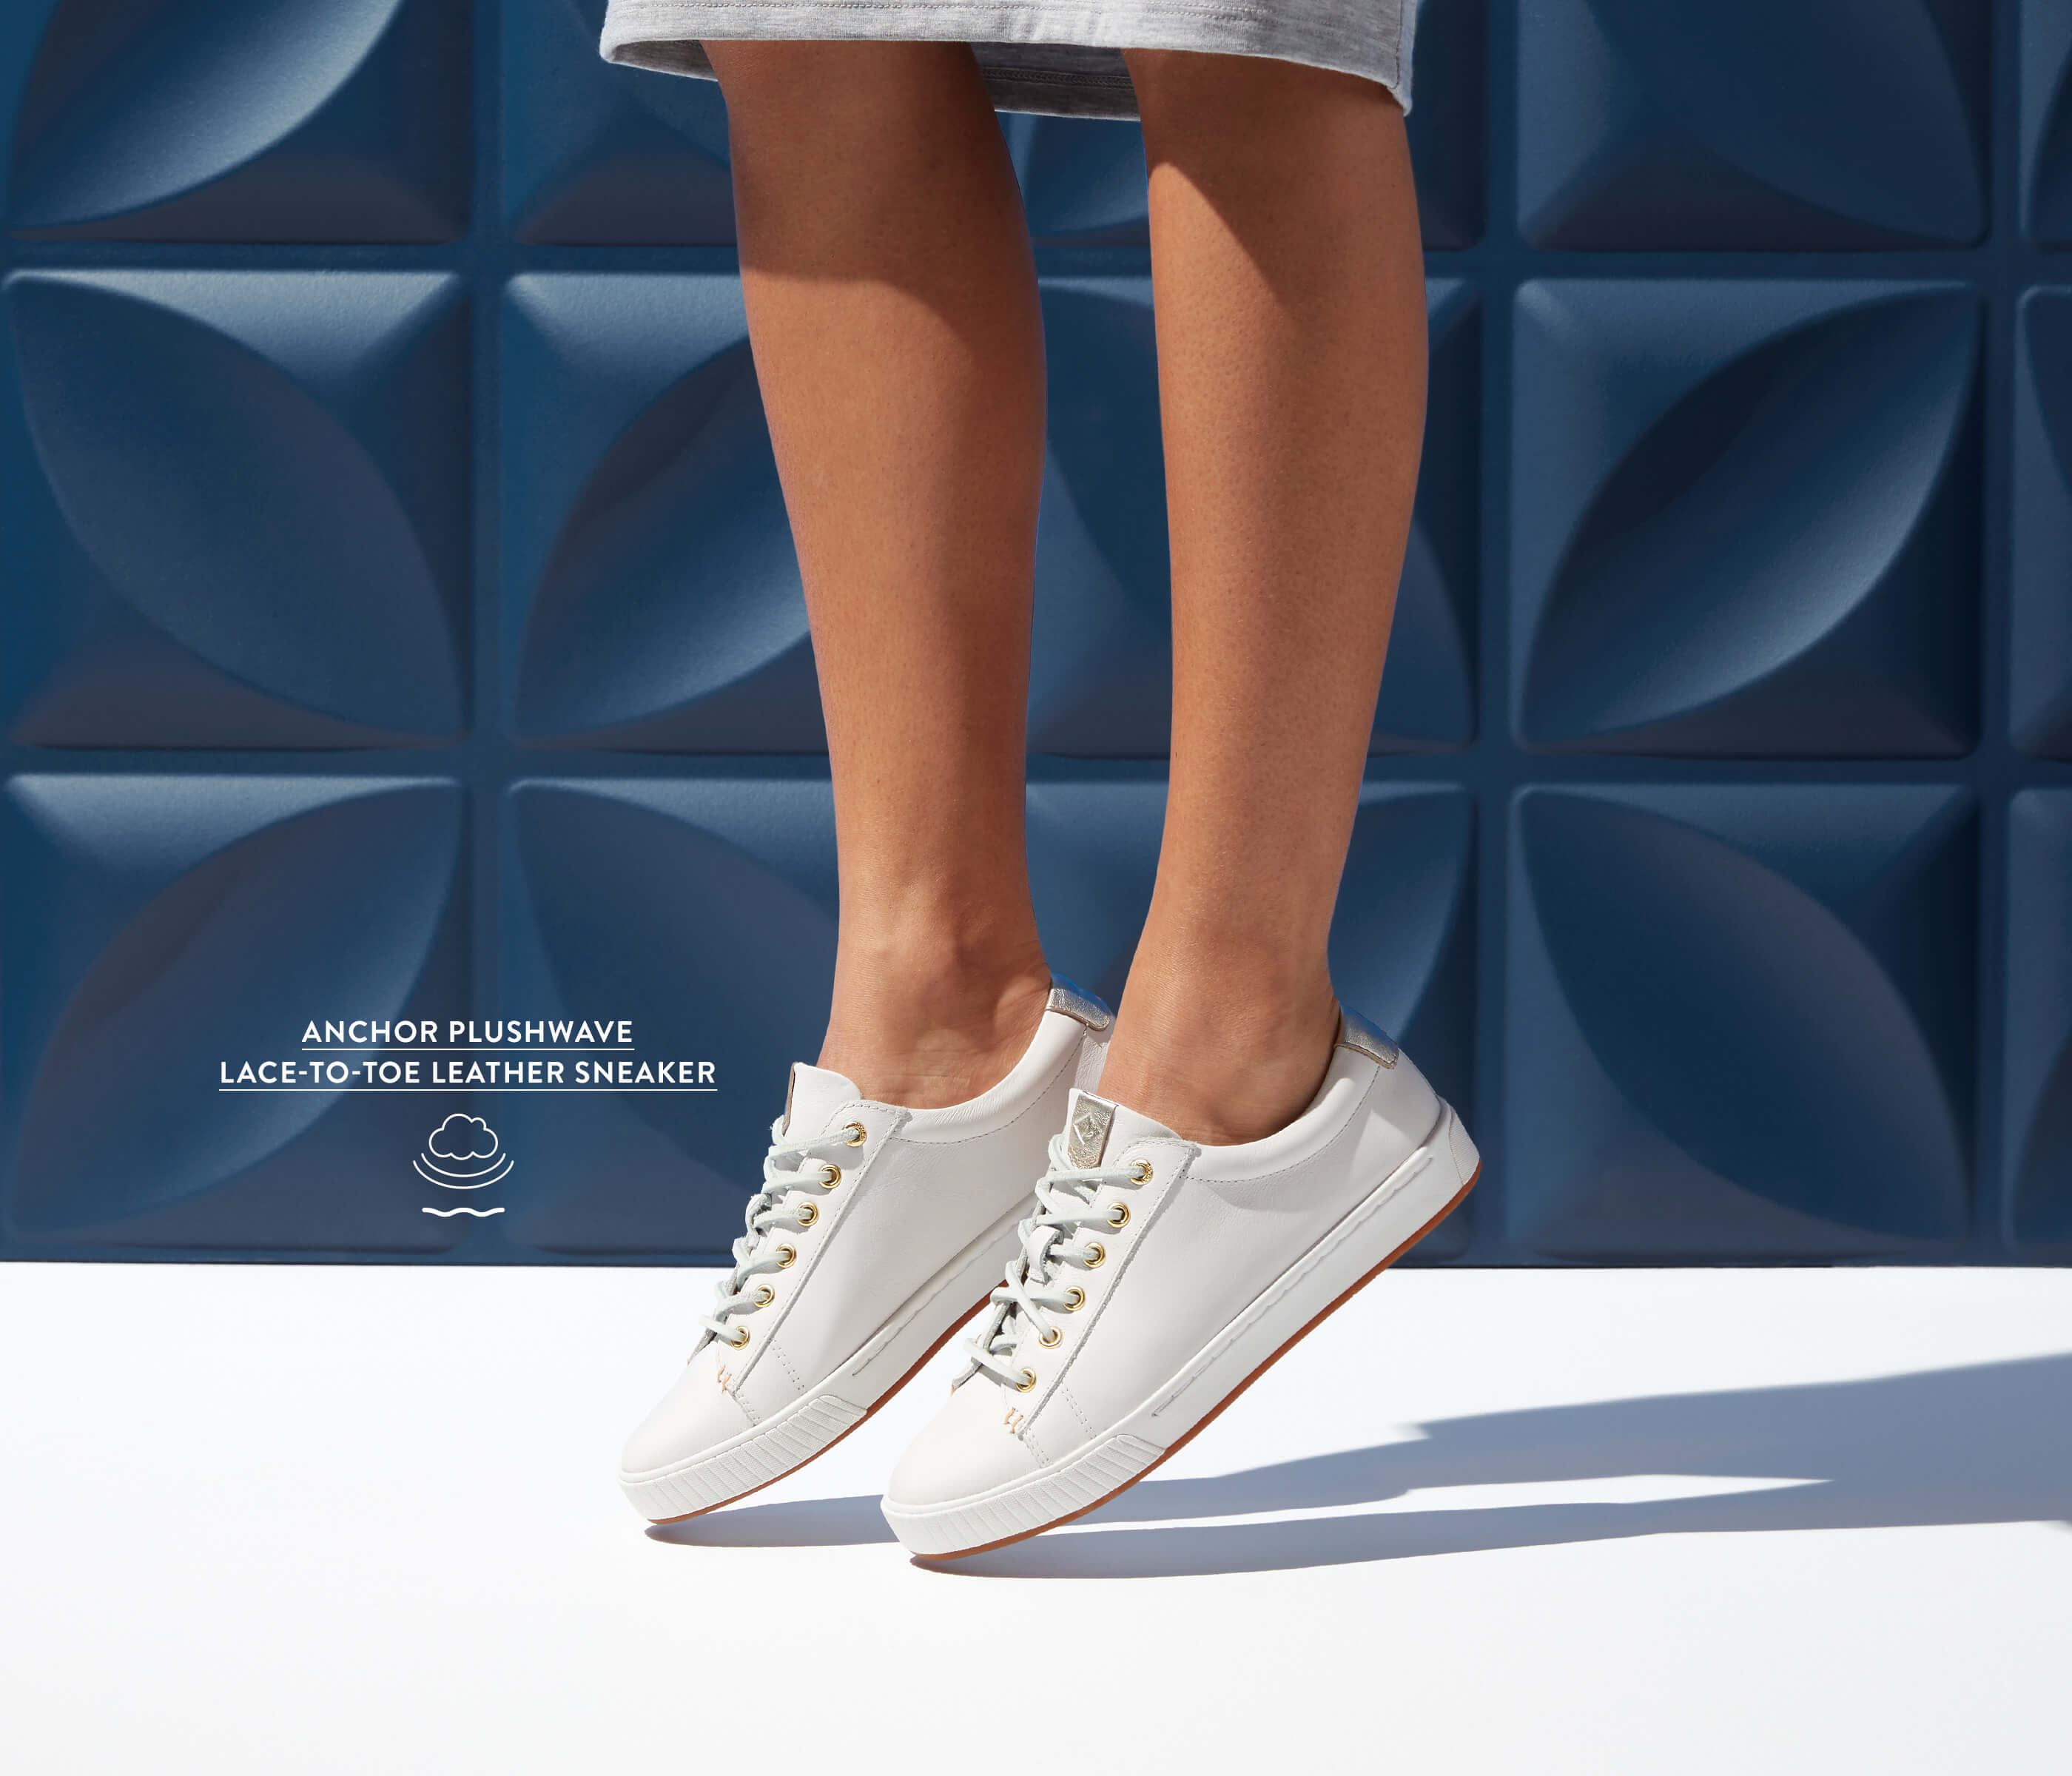 Anchor Plushwave Lace-to-Toe Leather Sneaker in white.